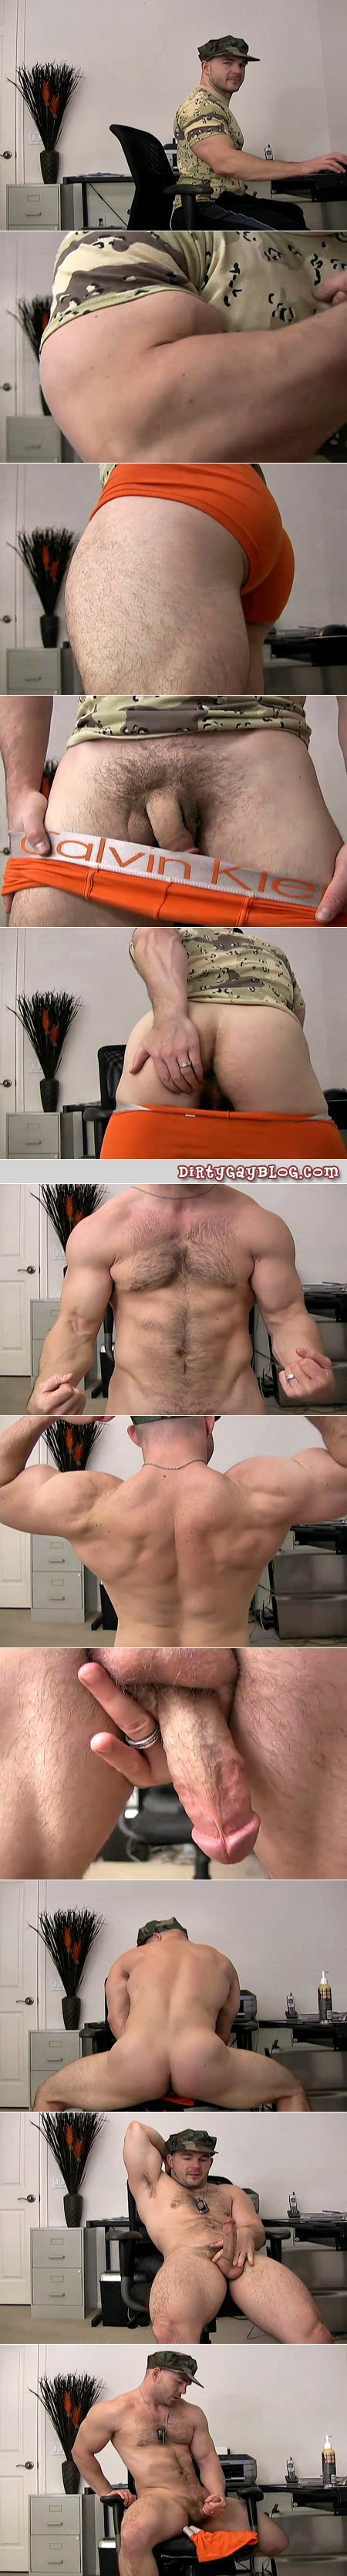 Muscular and hairy, Jeff's male masturbation session is like an exhibitionist with a gay military fetish.